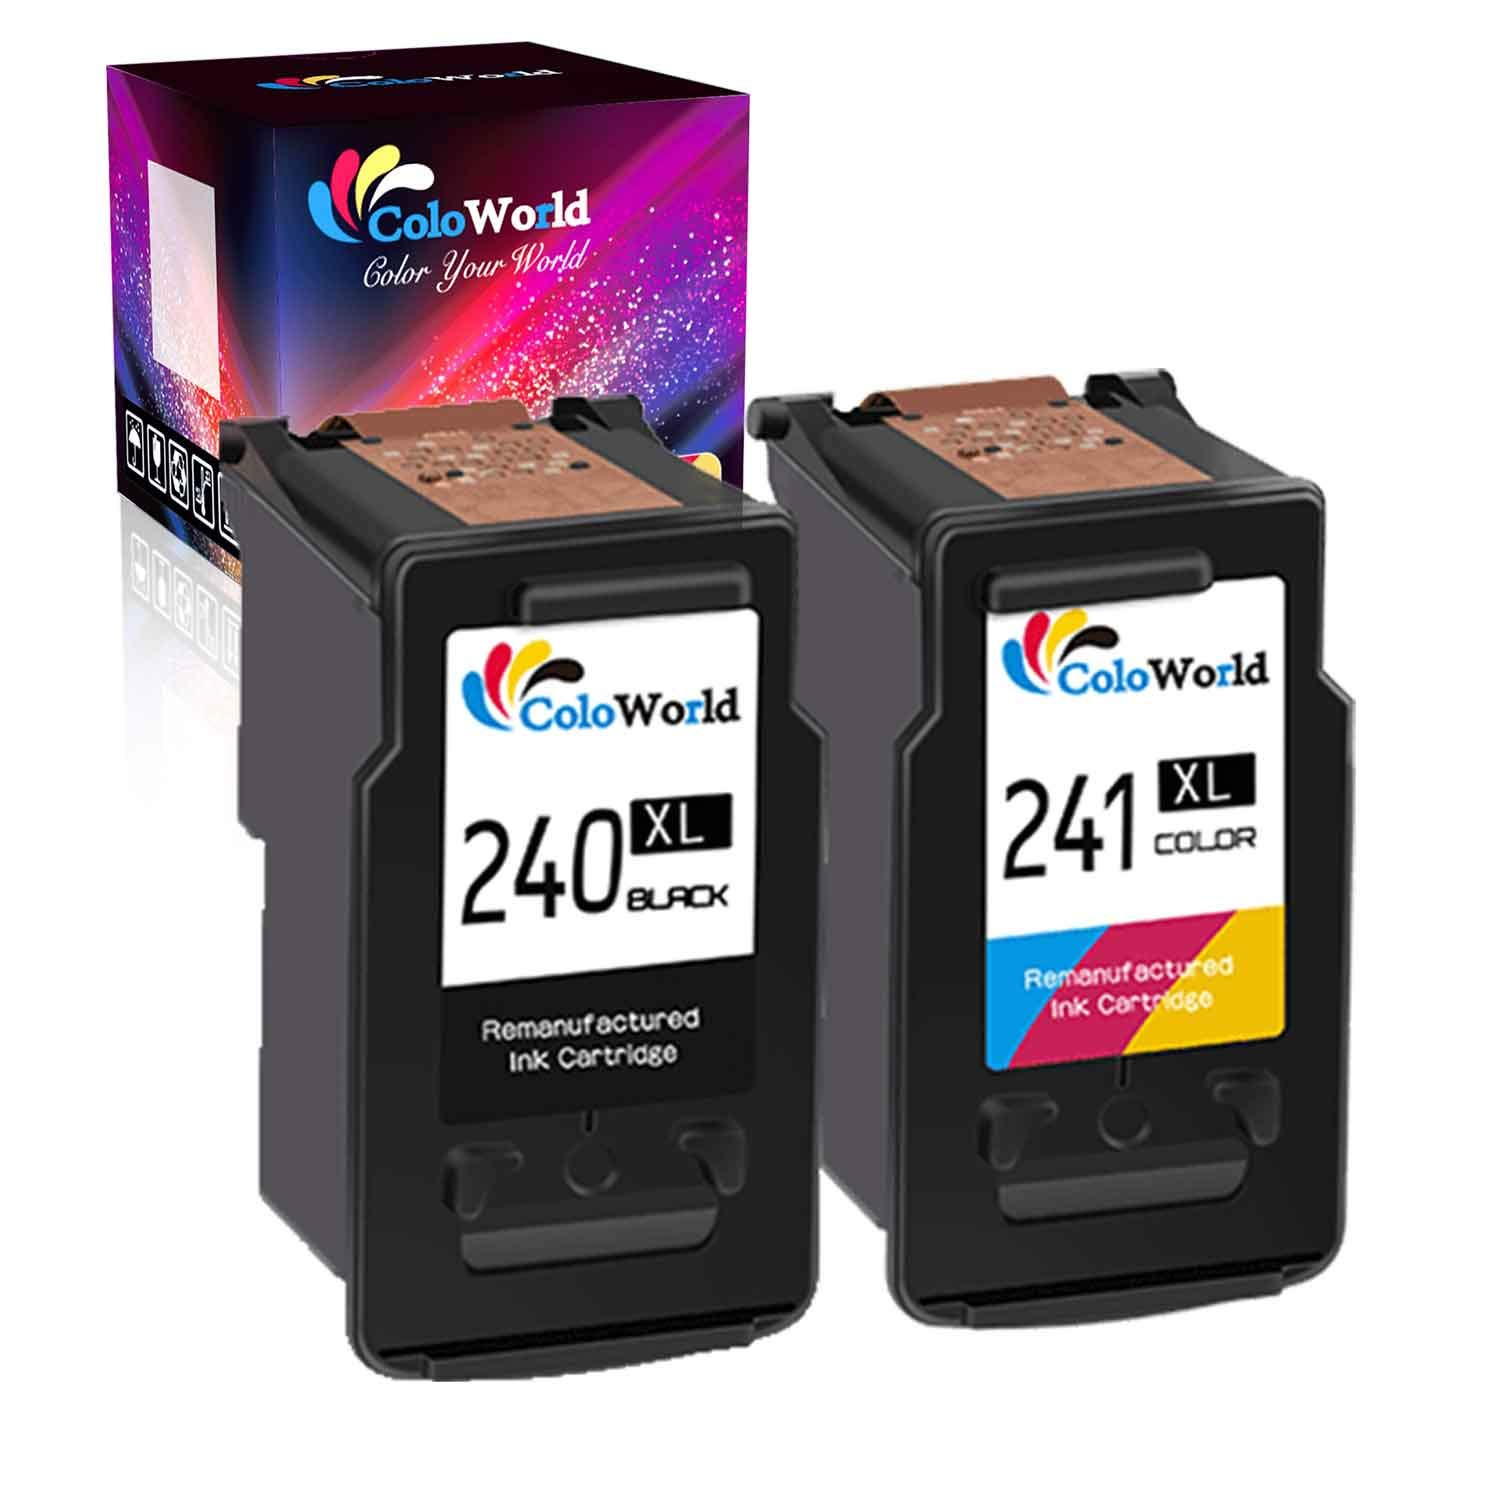 ColoWorld Remanufactured Ink Cartridge Replacement for Canon 240XL PG-240XL 240 XL CL-241XL 241 XL Used in Canon PIXMA MG3620 TS5120 MG3520 MX472 MX452 MG3220 MG2120 MX432 Printer (1 Black 1 Color)